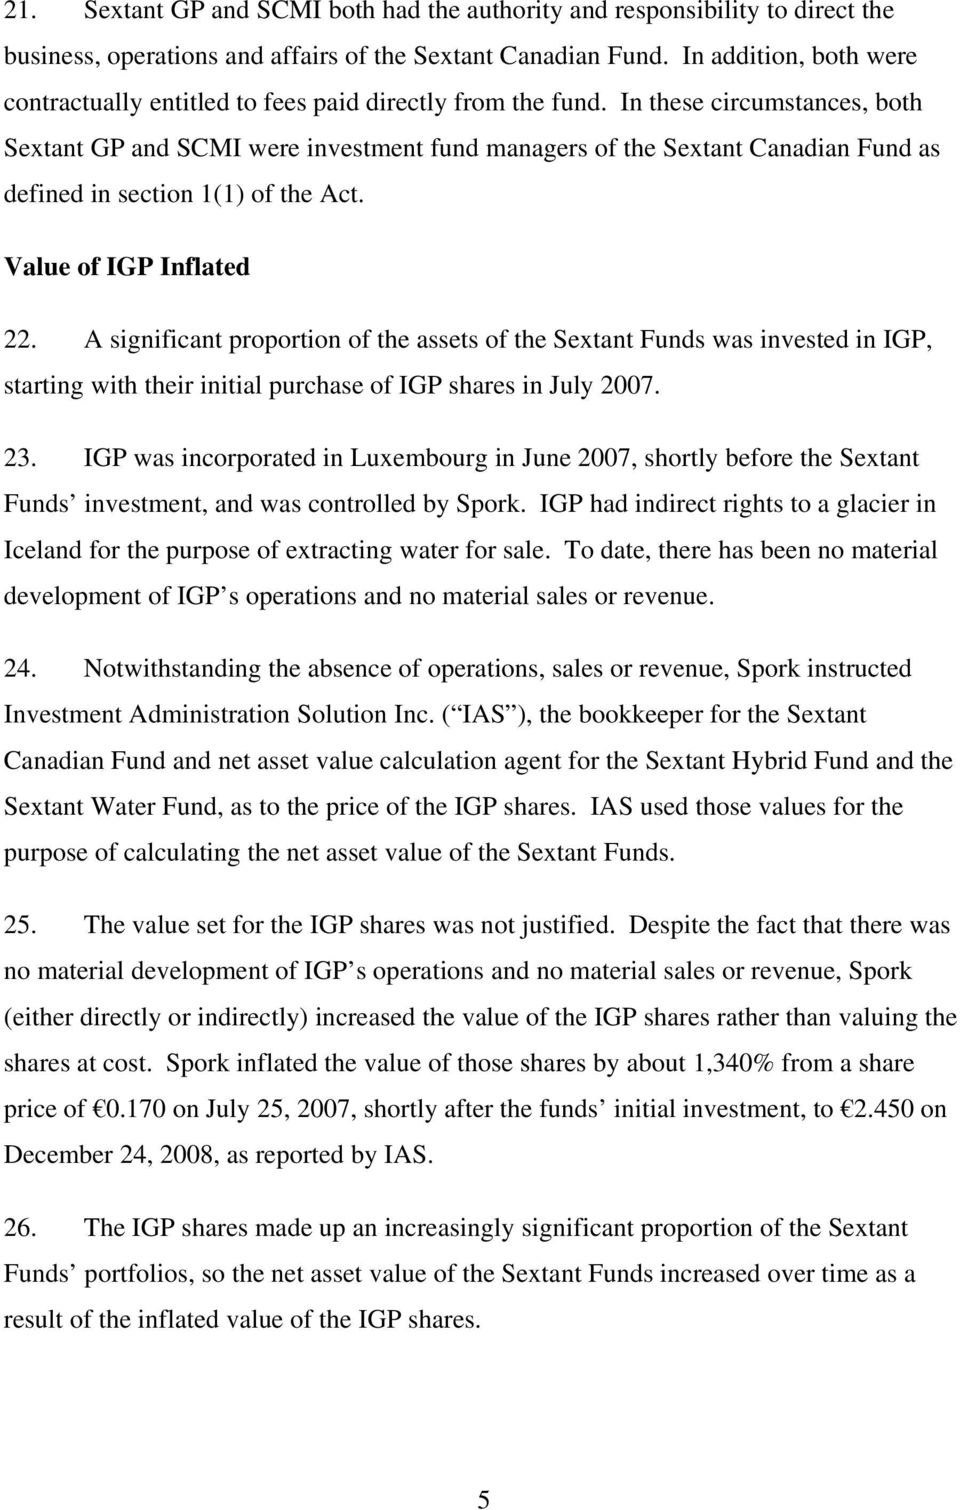 In these circumstances, both Sextant GP and SCMI were investment fund managers of the Sextant Canadian Fund as defined in section 1(1) of the Act. Value of IGP Inflated 22.